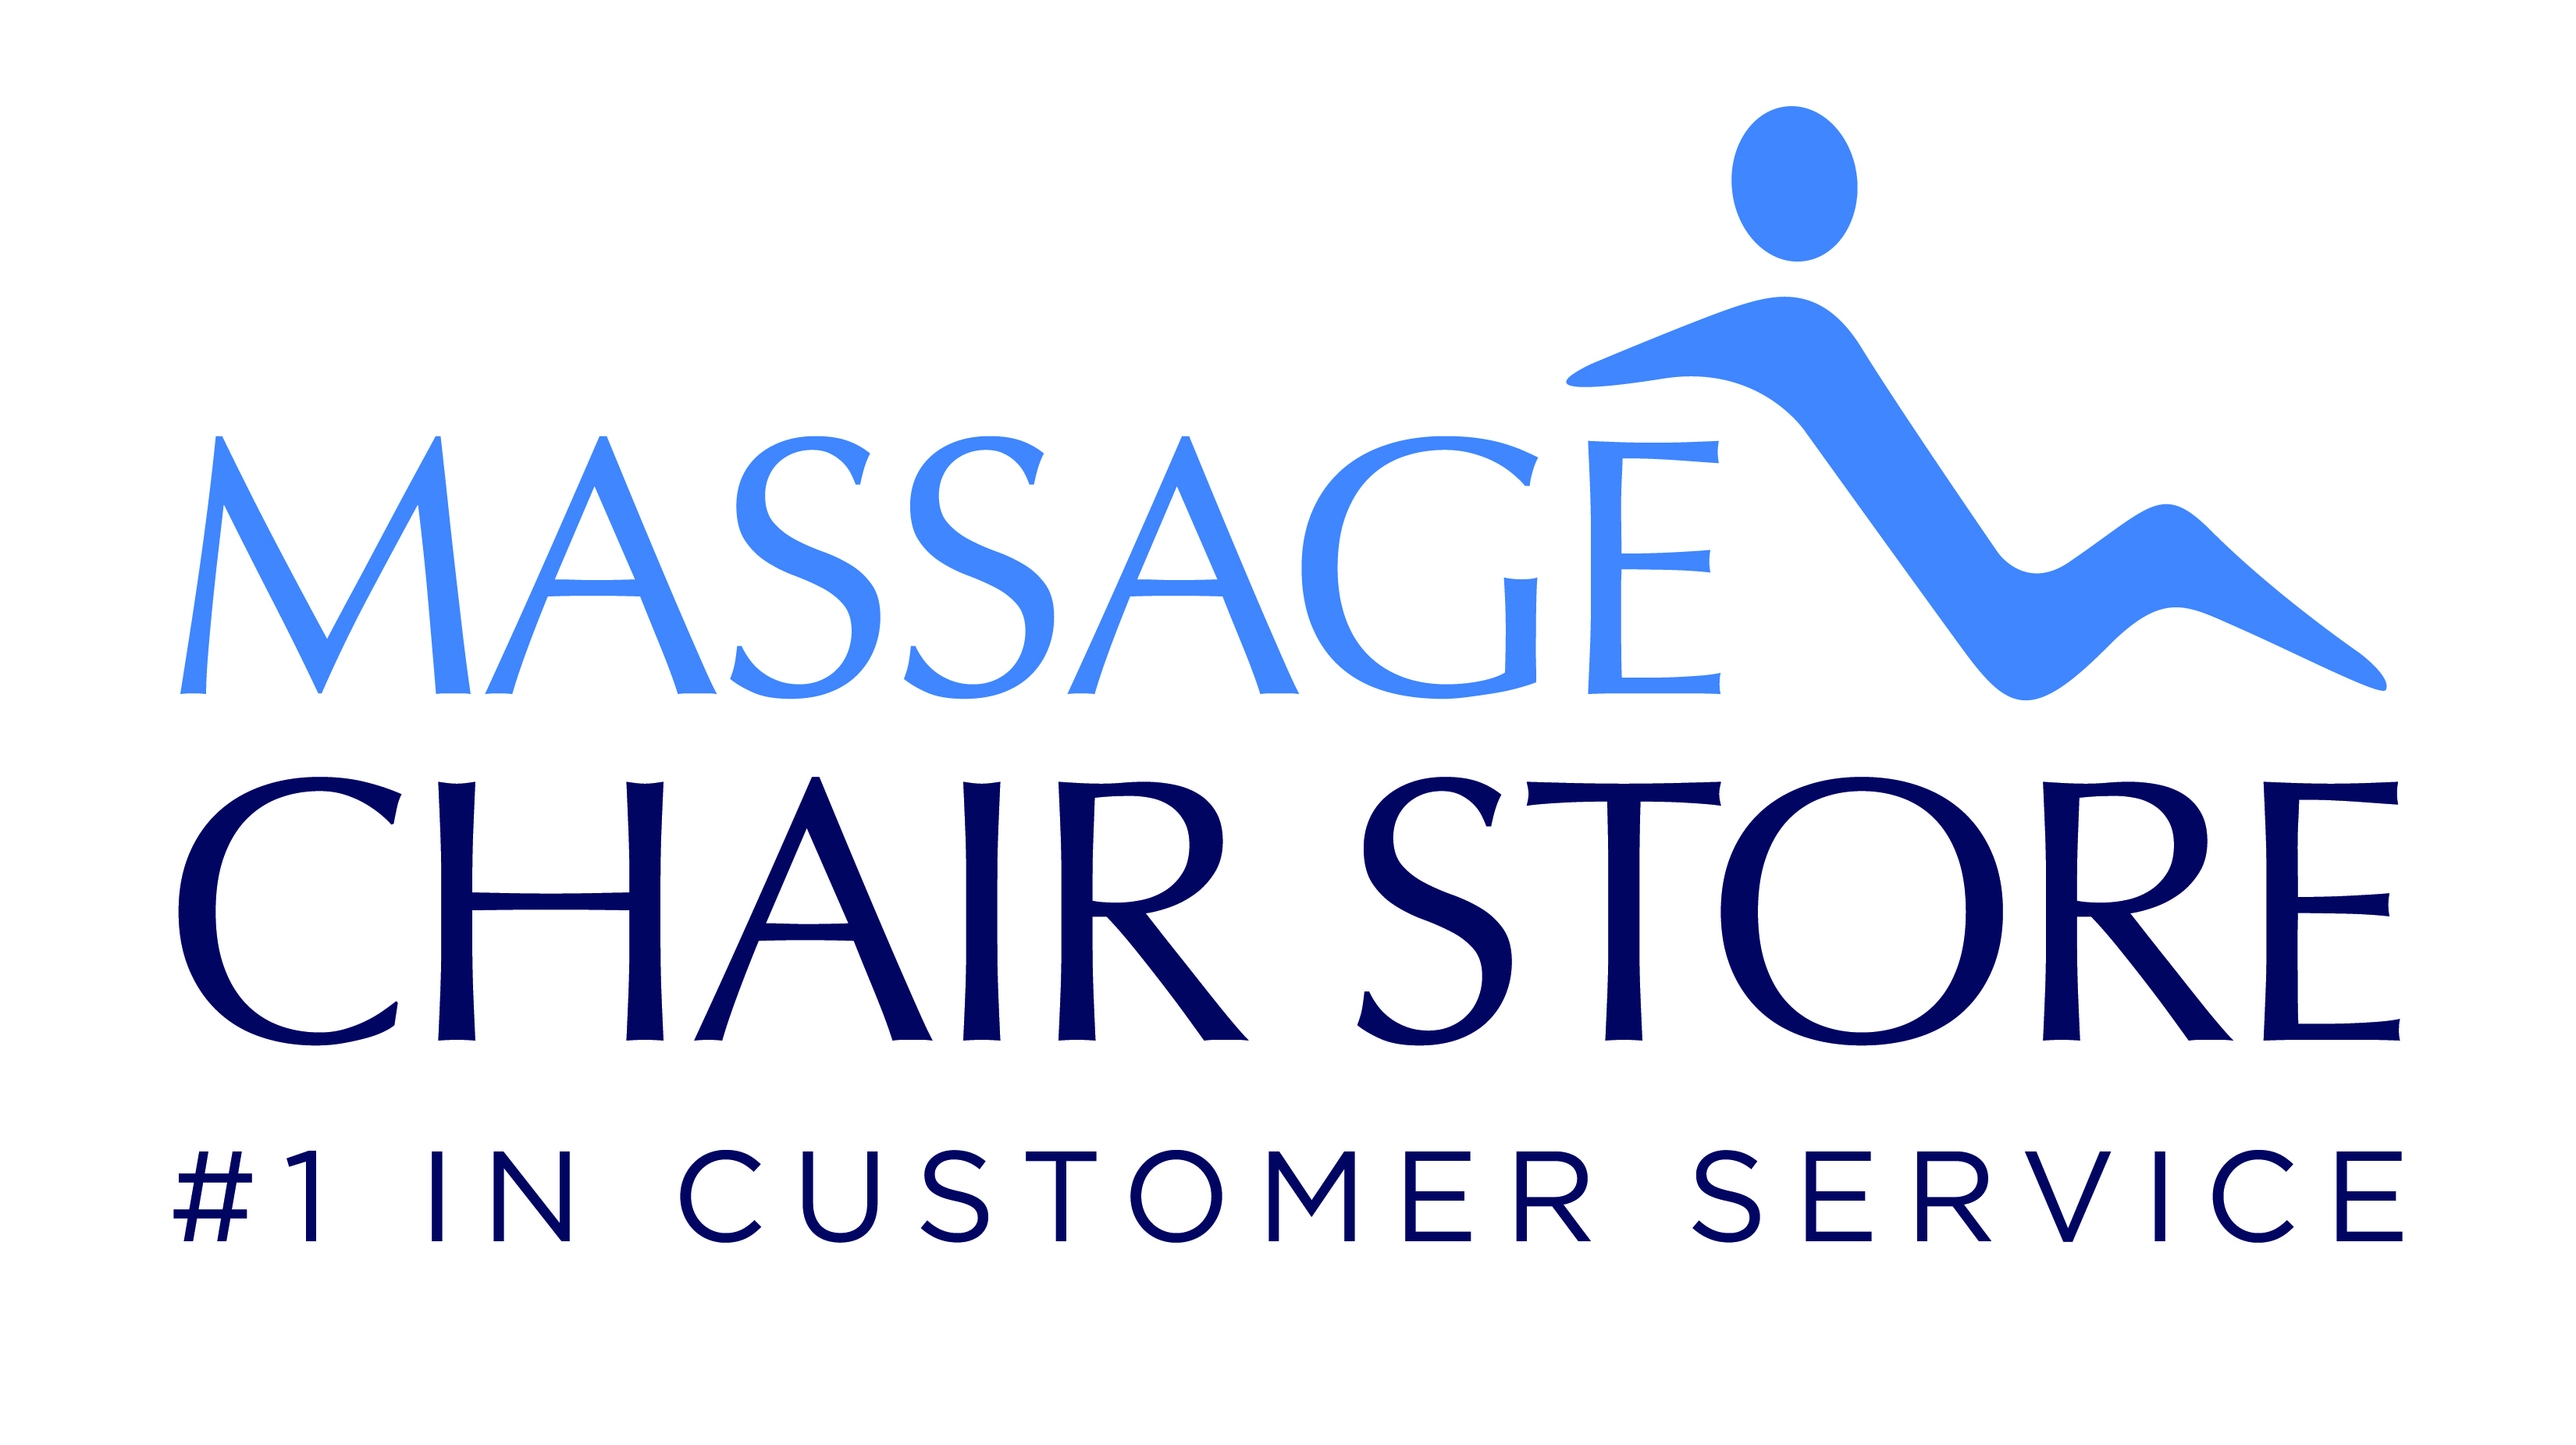 MassageChairStore Warns Against Fraudulent Retailer Websites